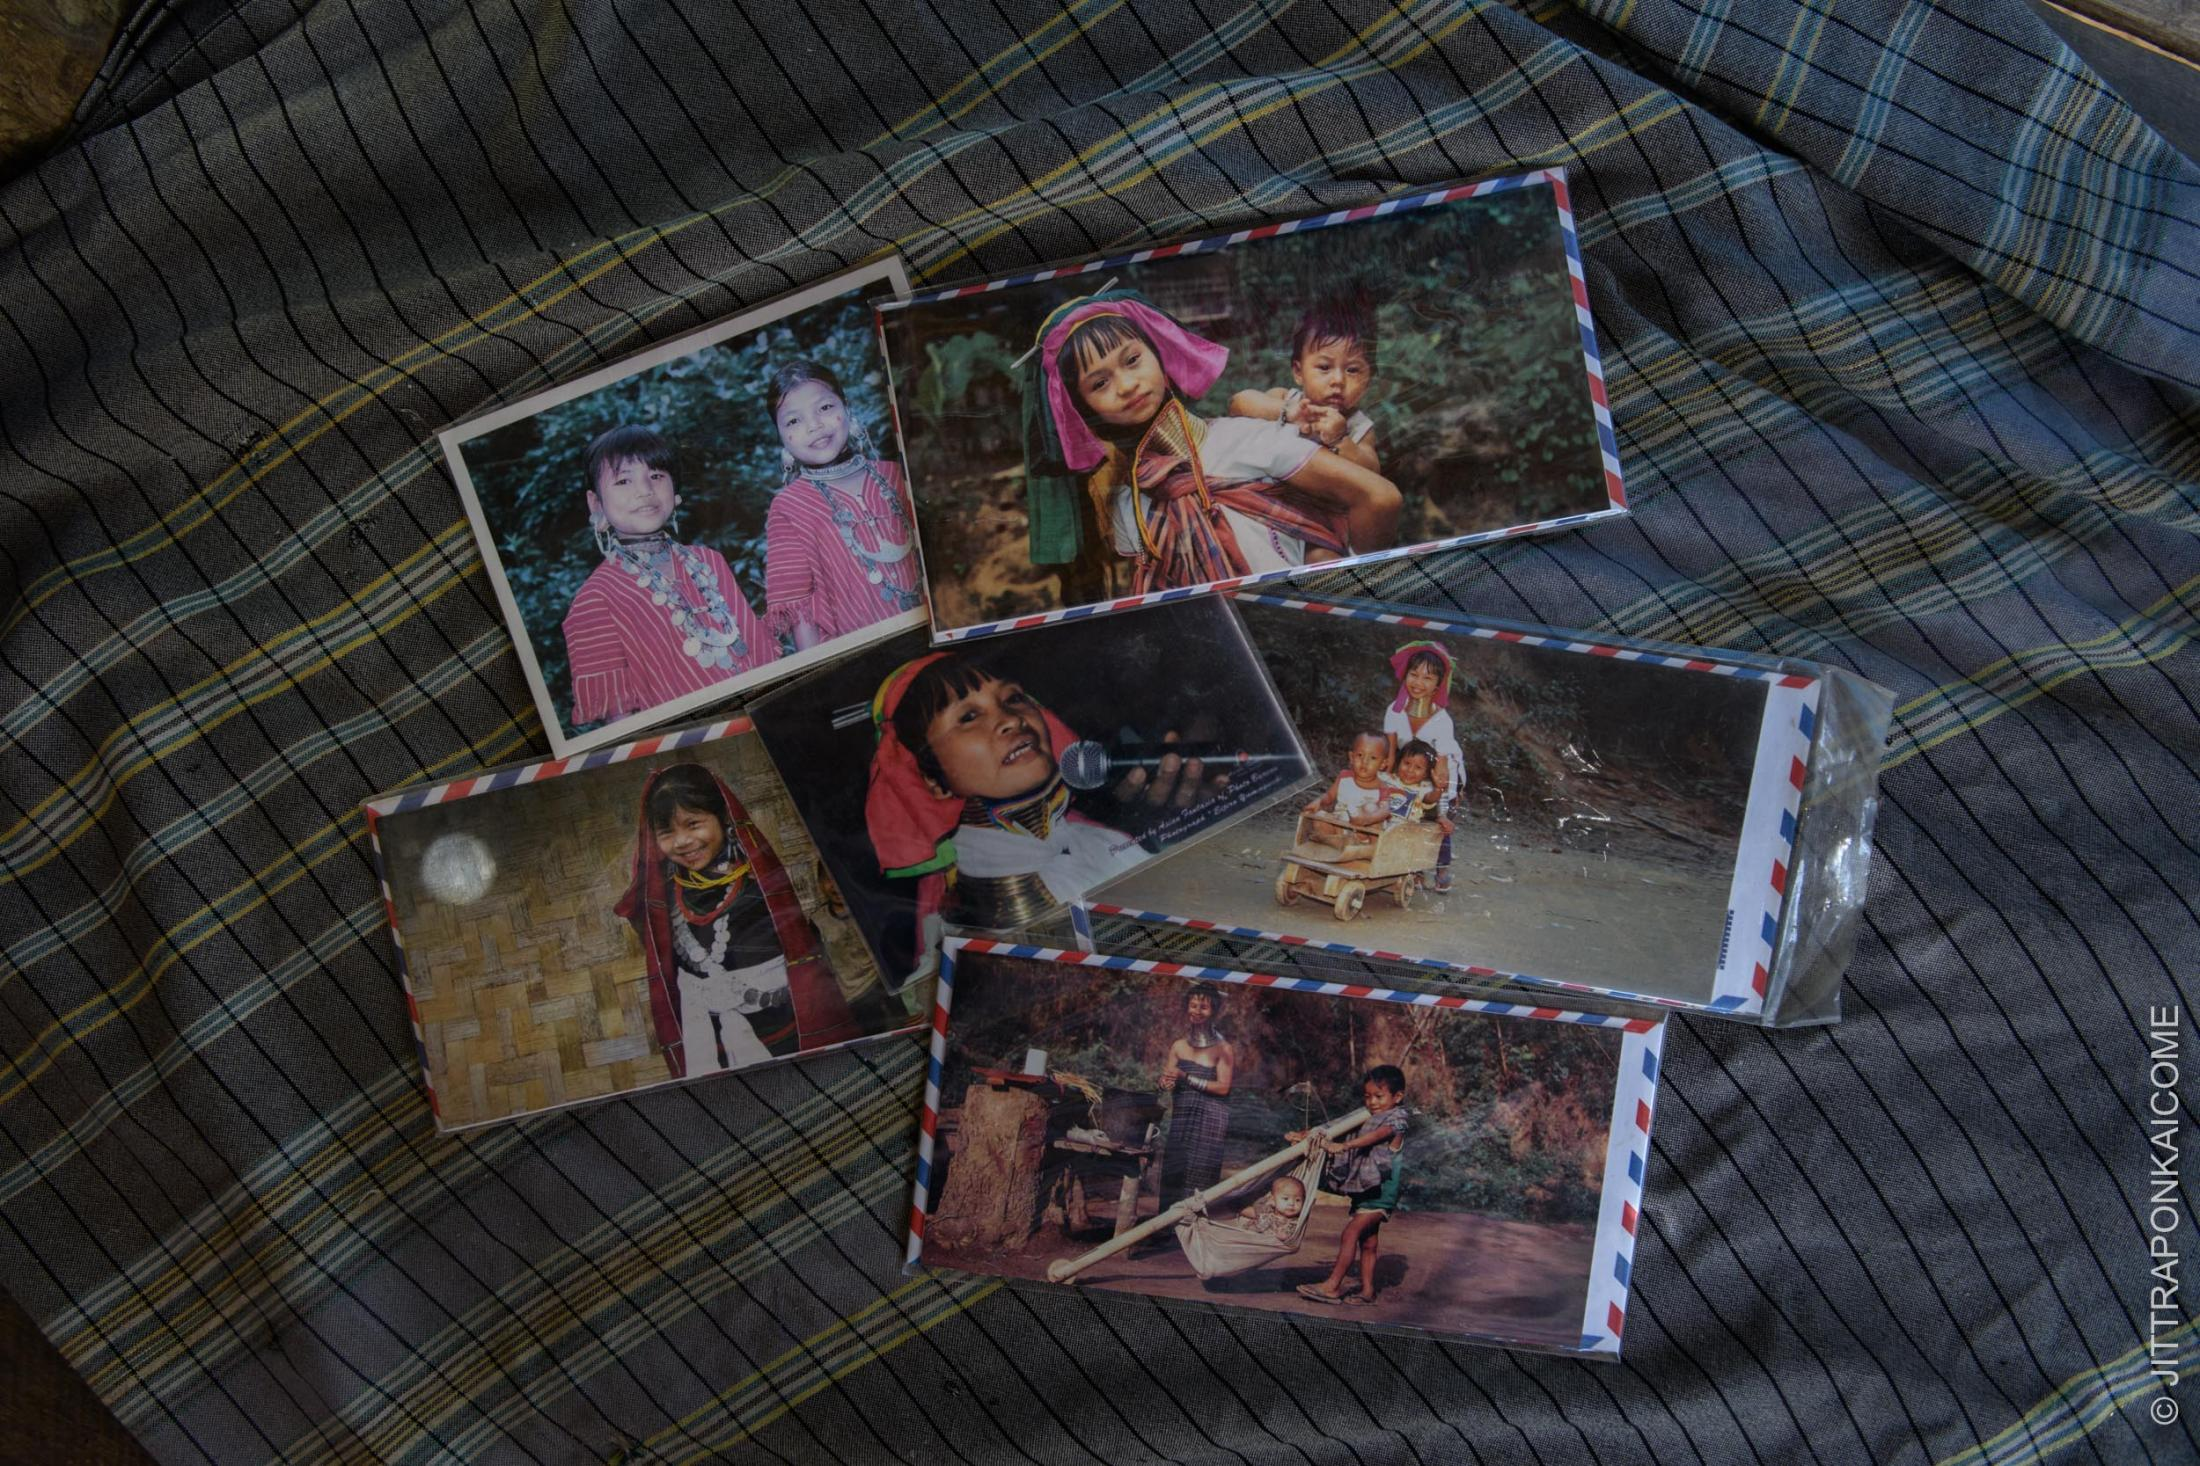 A set of postcard souvenirs displayed the livelihood of the Kayan and Kayaw tribes are hardly making money due to a lack of tourists. Ban Nai Soi, Mae Hong Son, Thailand.